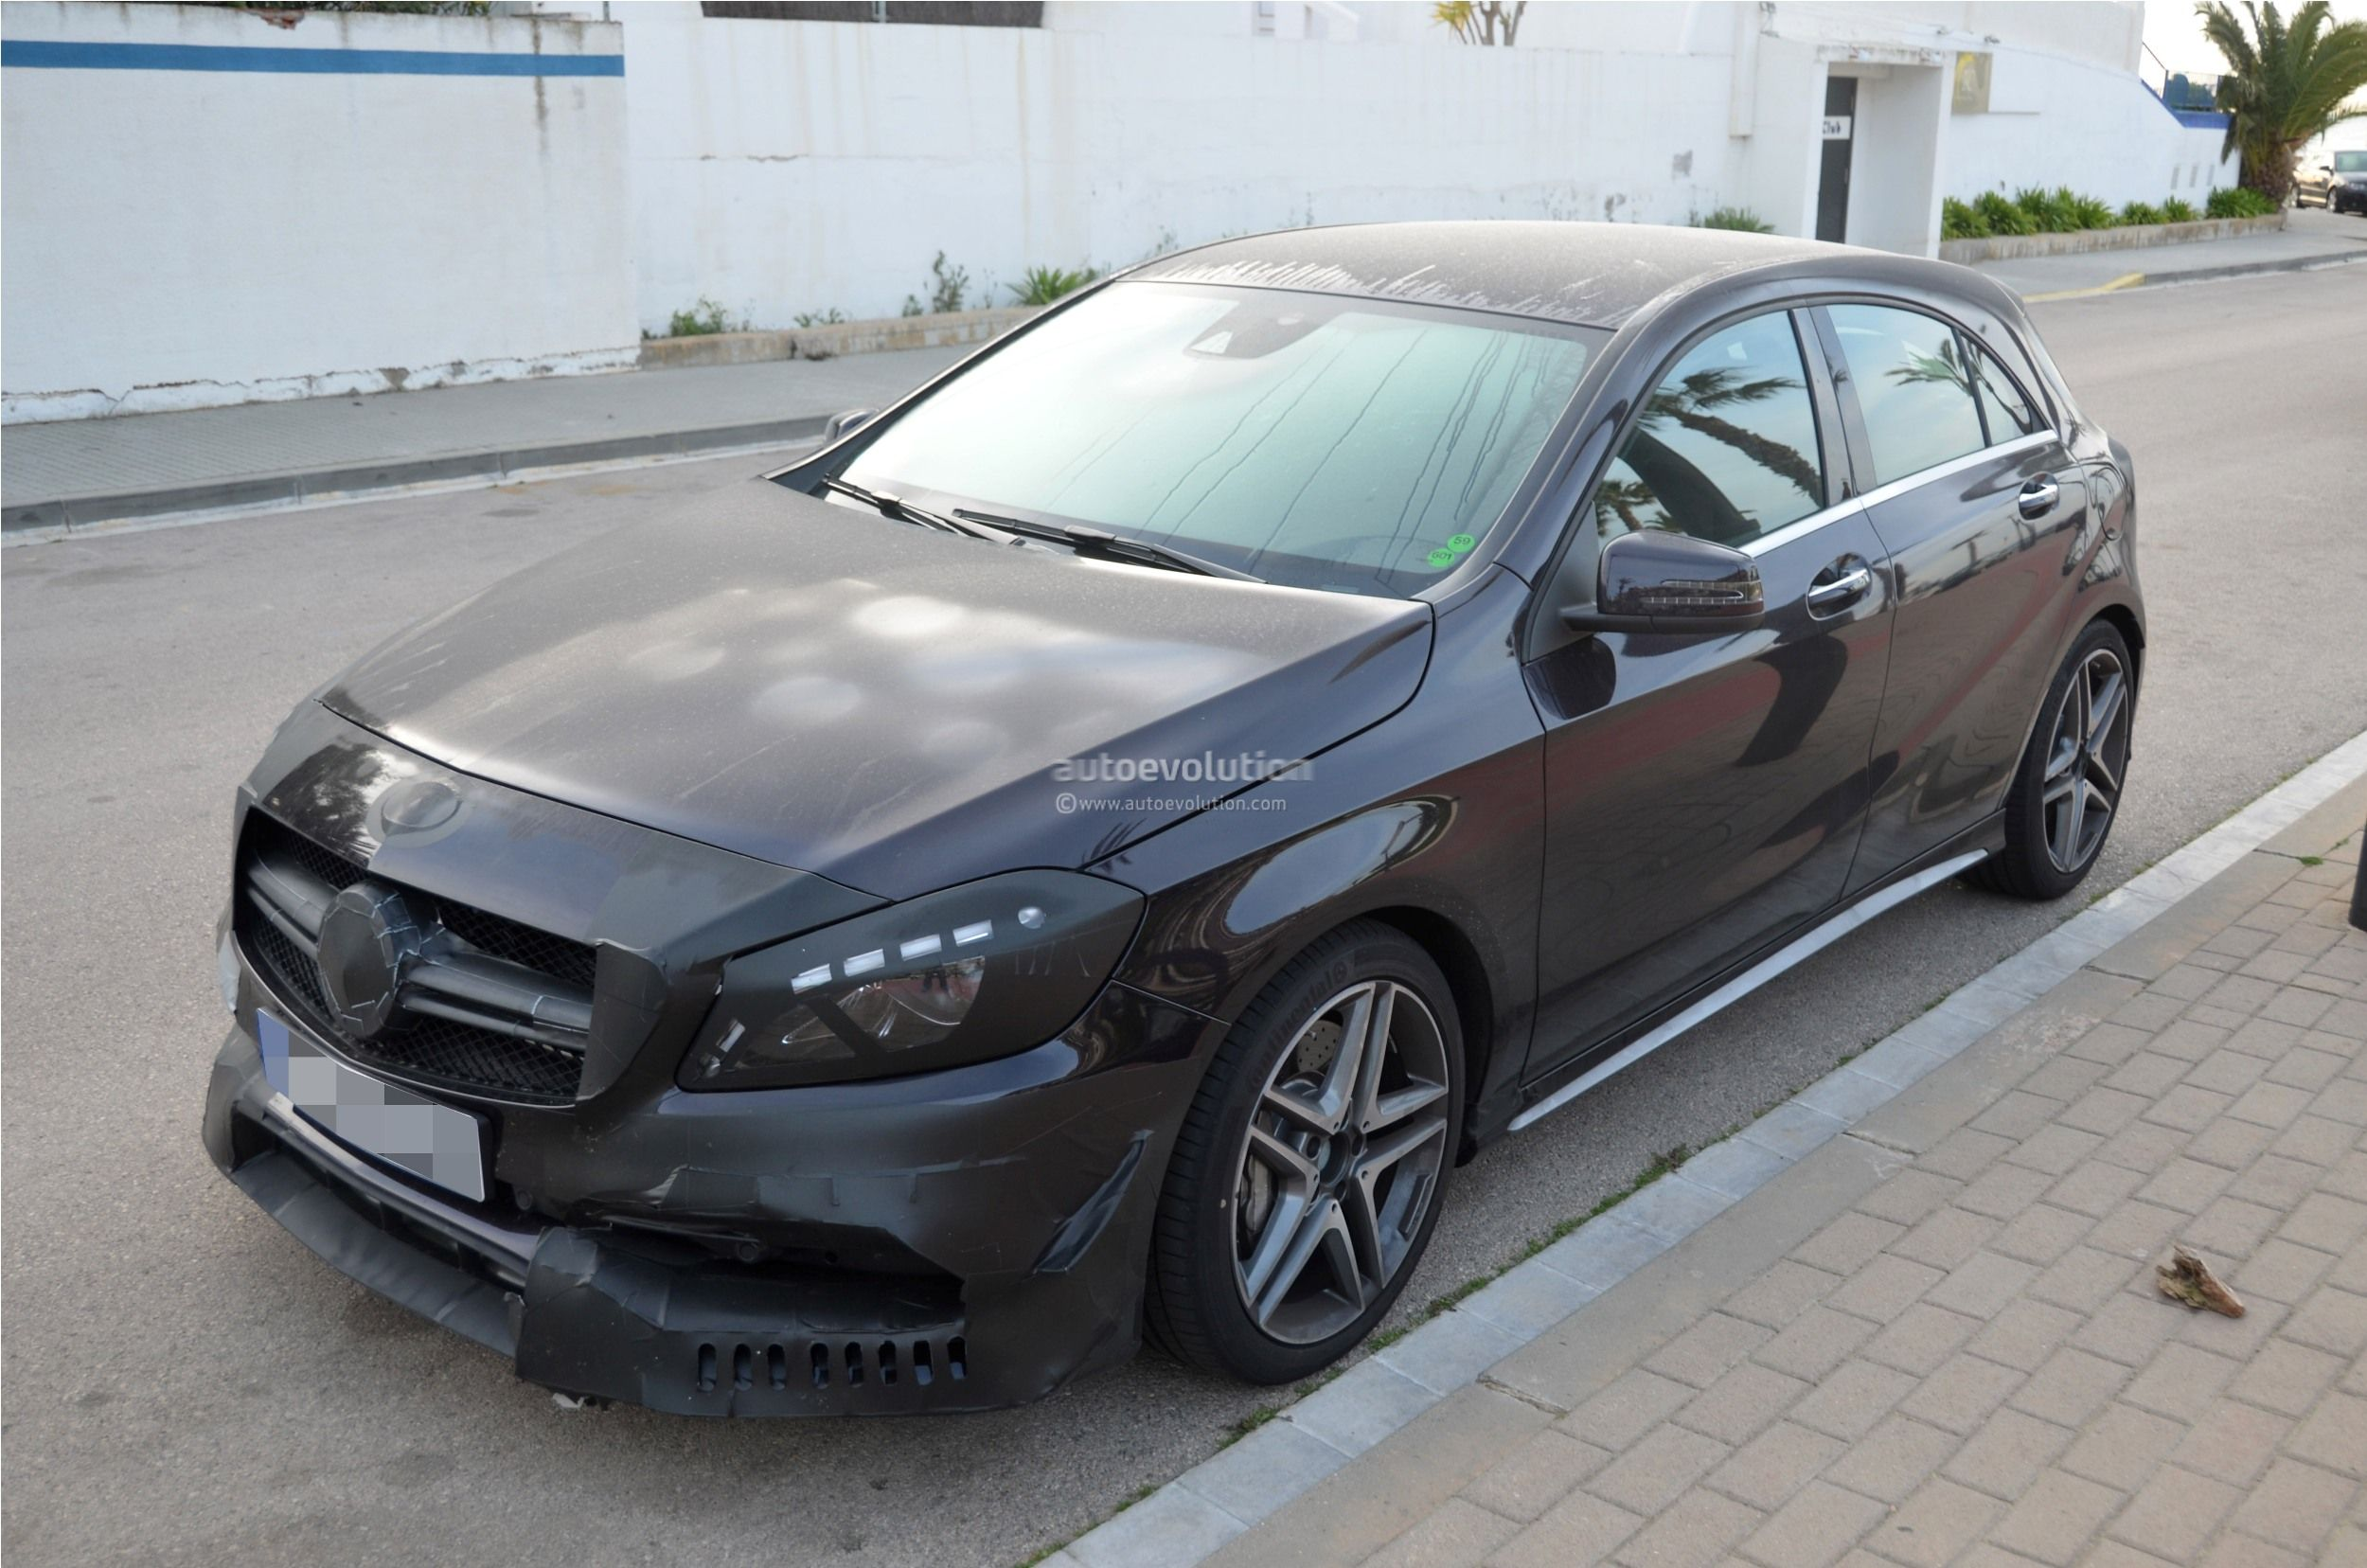 2016 - [Mercedes] Classe A restylée - Page 5 2016-mercedes-benz-a-45-amg-facelift-spied-photo-gallery_5